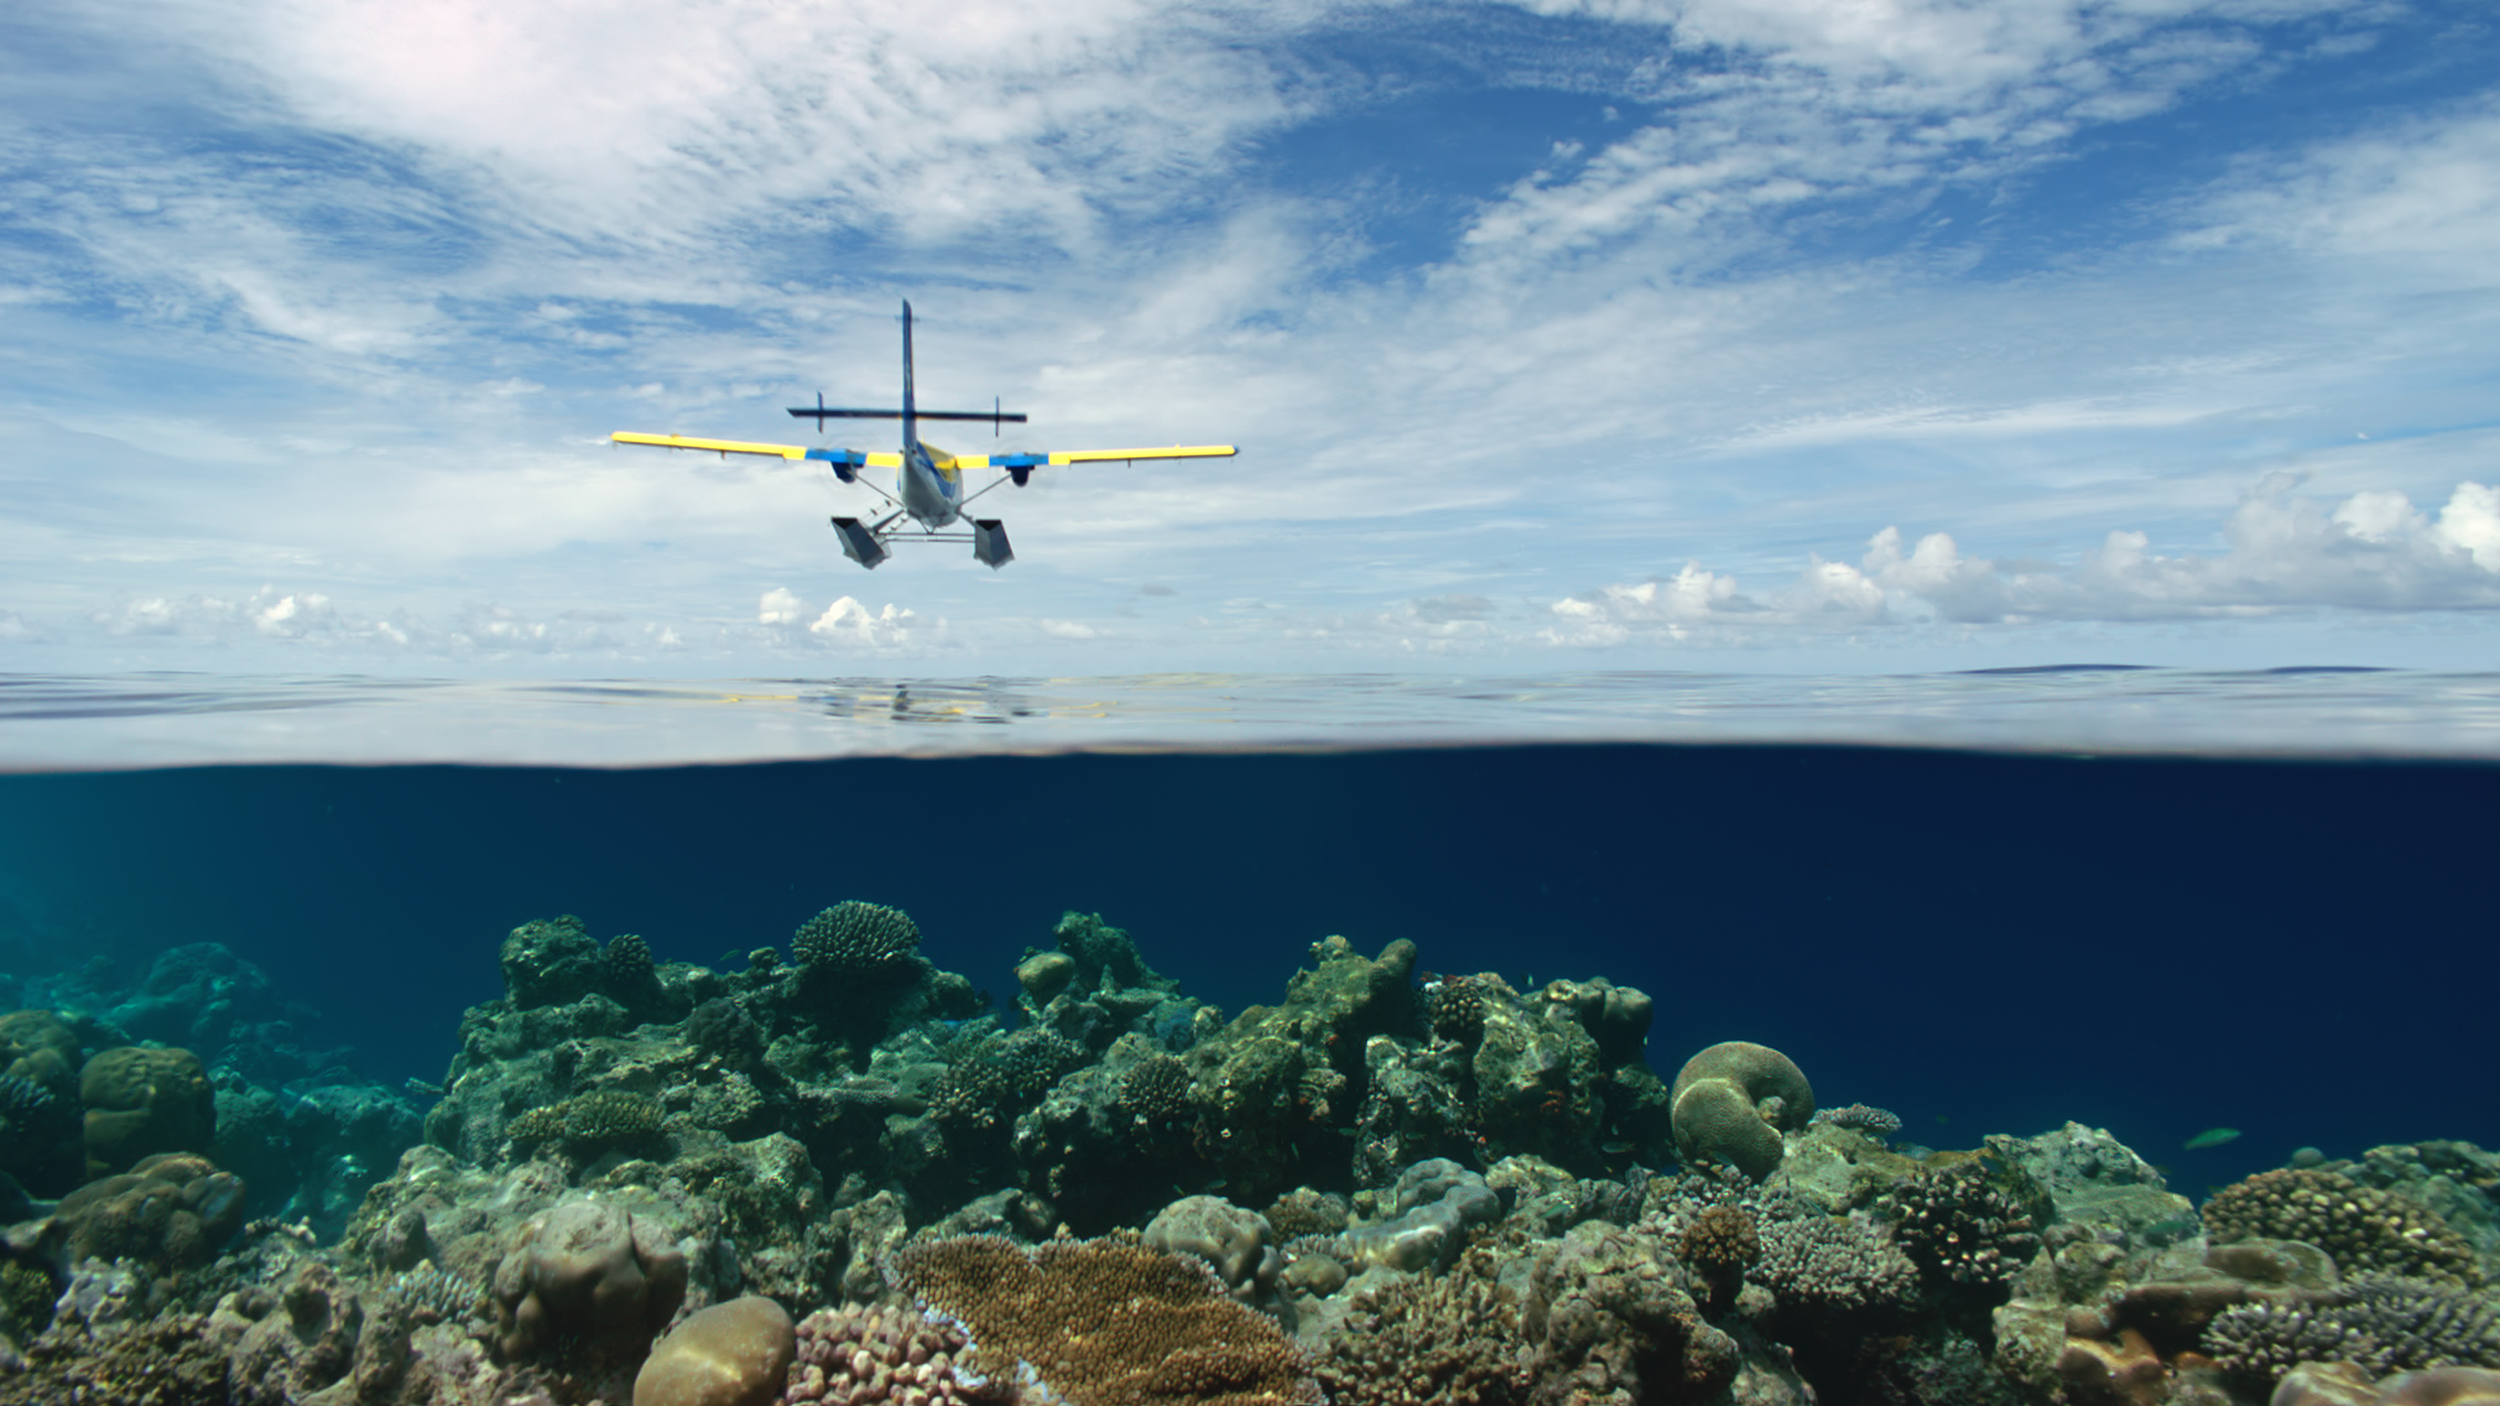 Twin Otter seaplane flying over the shallow waters of the Maldives.